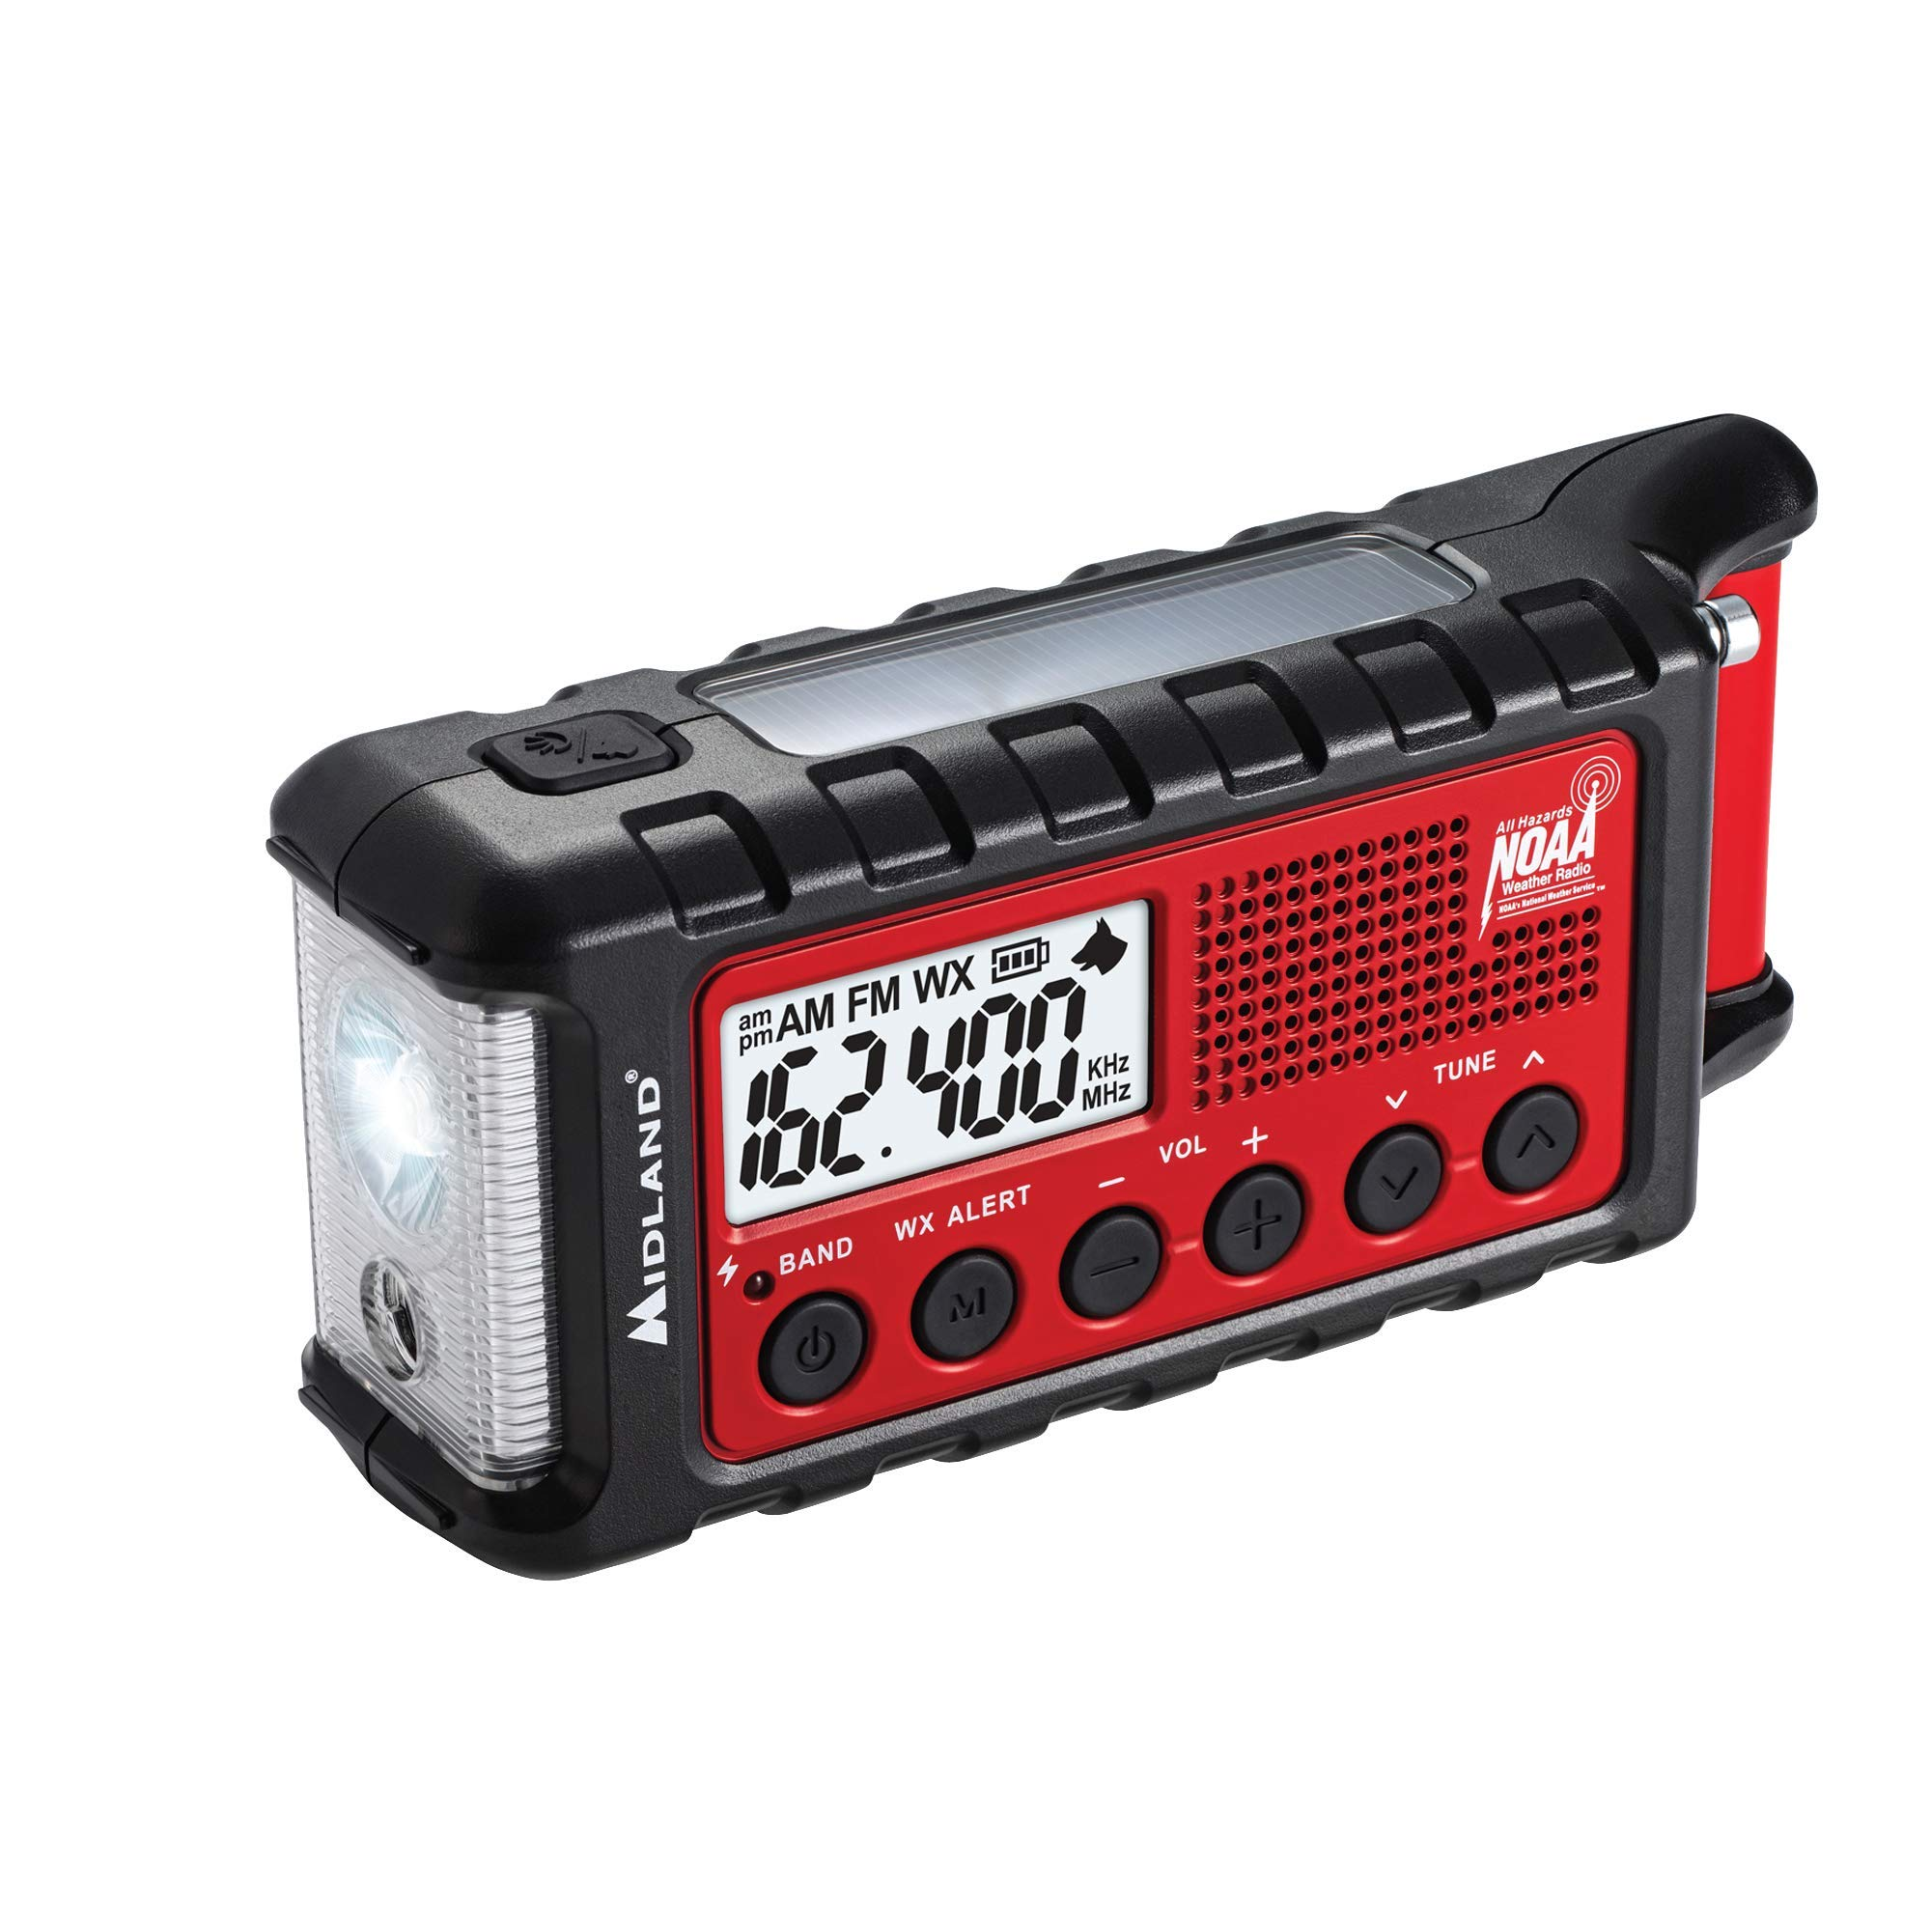 Midland - ER310, Emergency Crank Weather AM/FM Radio - Multiple Power Sources, SOS Emergency Flashlight, Ultrasonic Dog Whistle, NOAA Weather Scan + Alert (Red/Black) by Midland